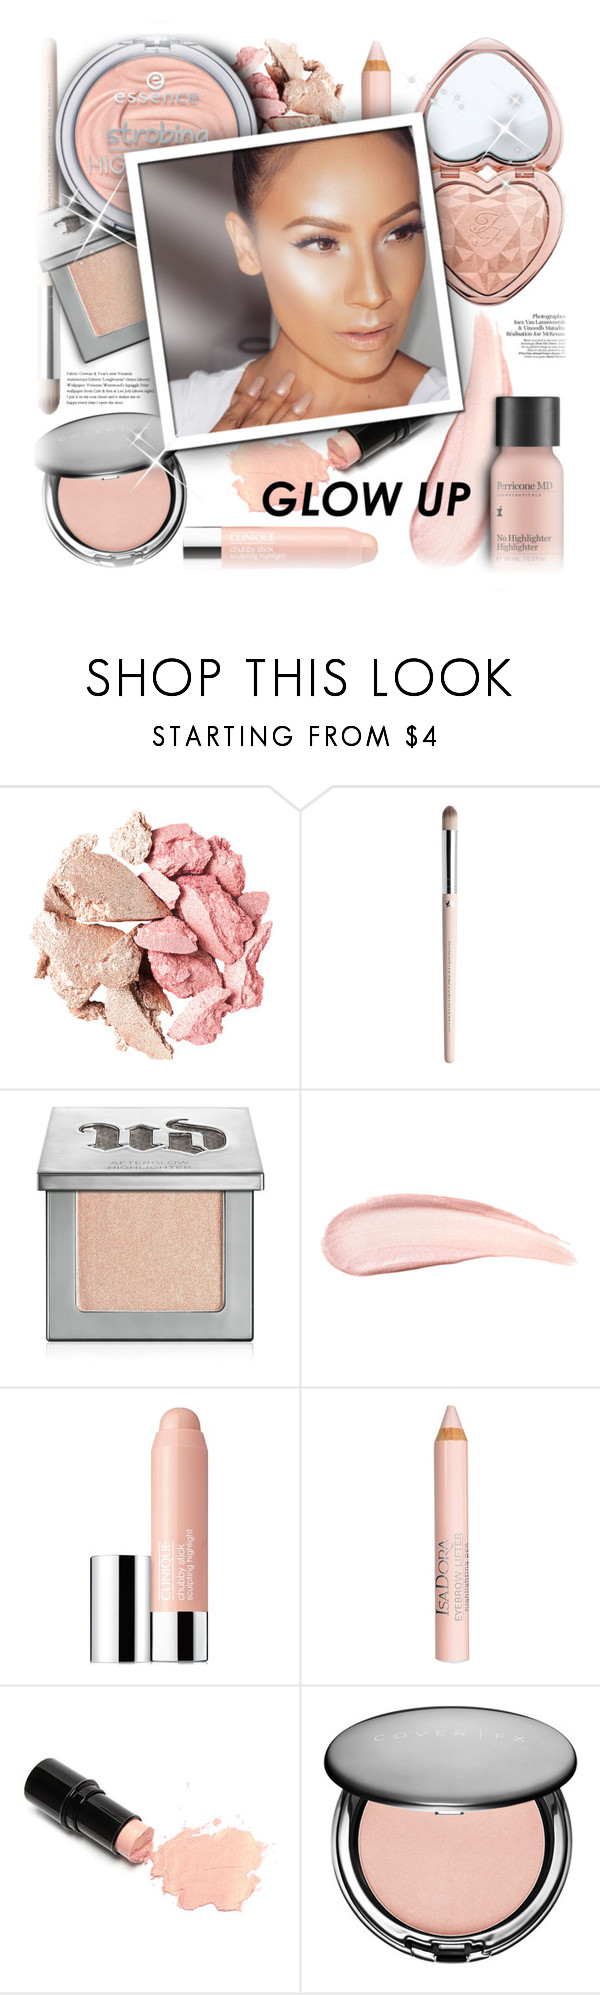 """#838 - Glow Up: Glam Highlighters"" by lilmissmegan ❤ liked on Polyvore featuring beauty, Urban Decay, Clinique, Isadora, Cover FX, Perricone MD, BeautyTrend, Beauty, highlighter and makeupgoals"